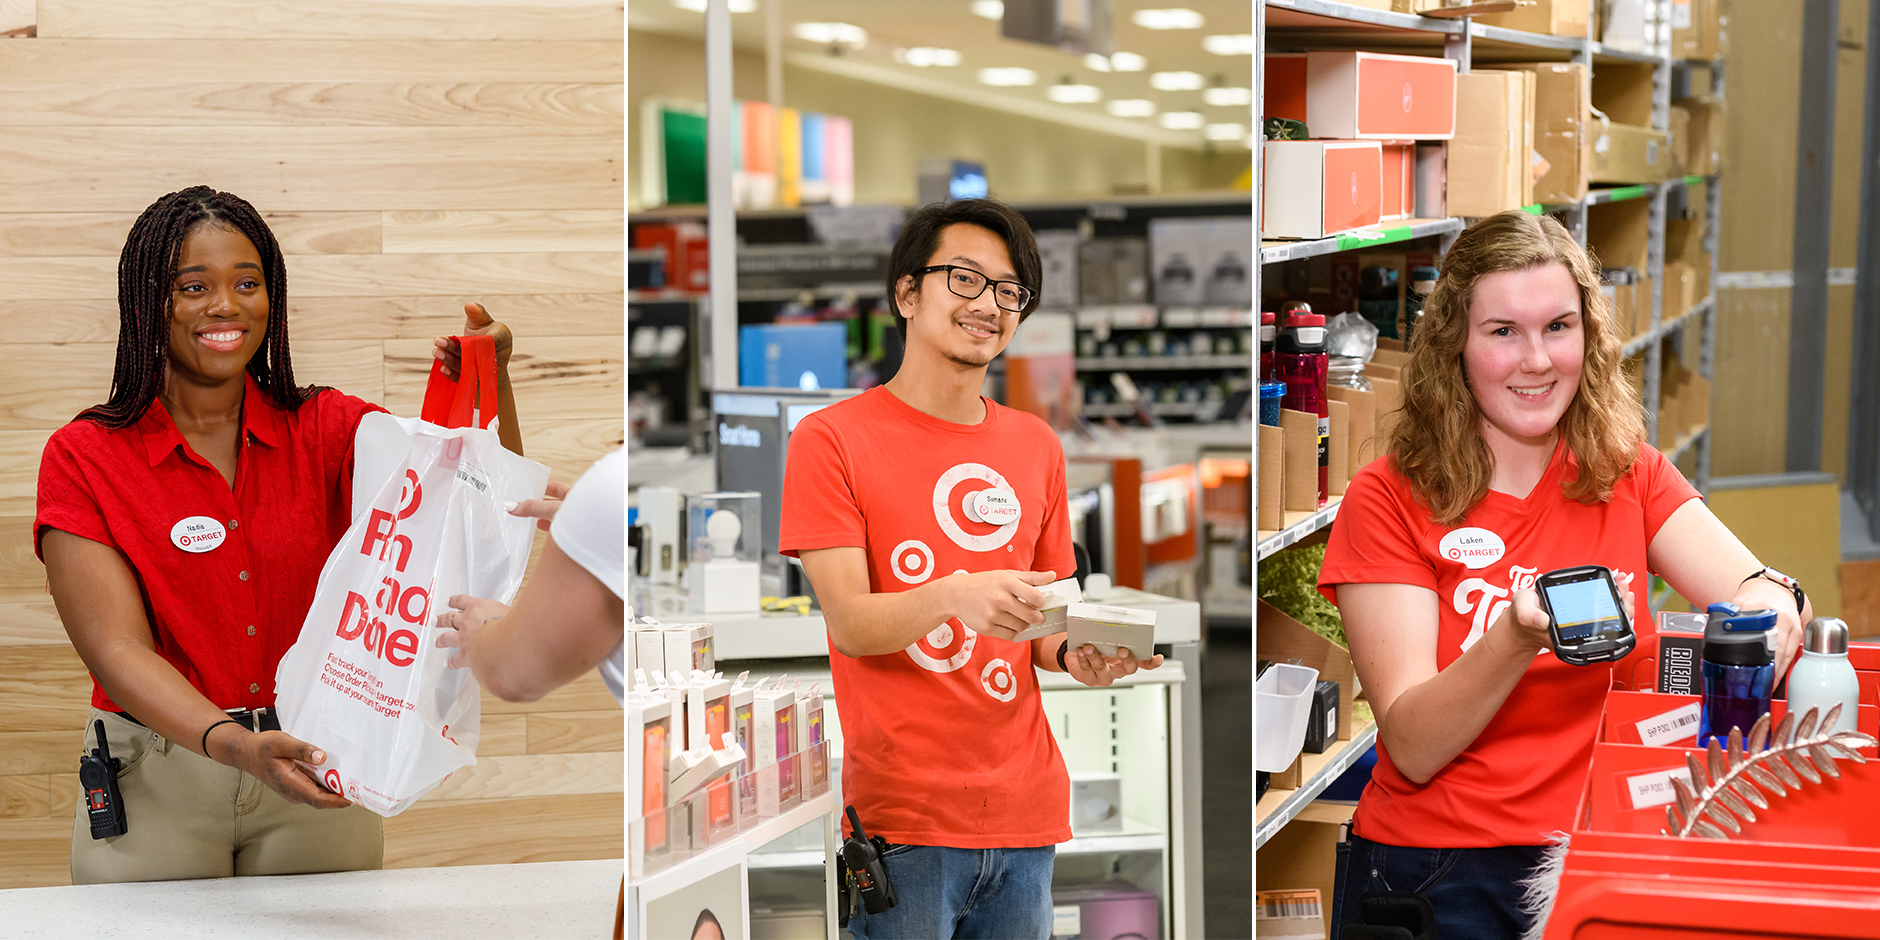 A split image showing three Target team members working in Target stores